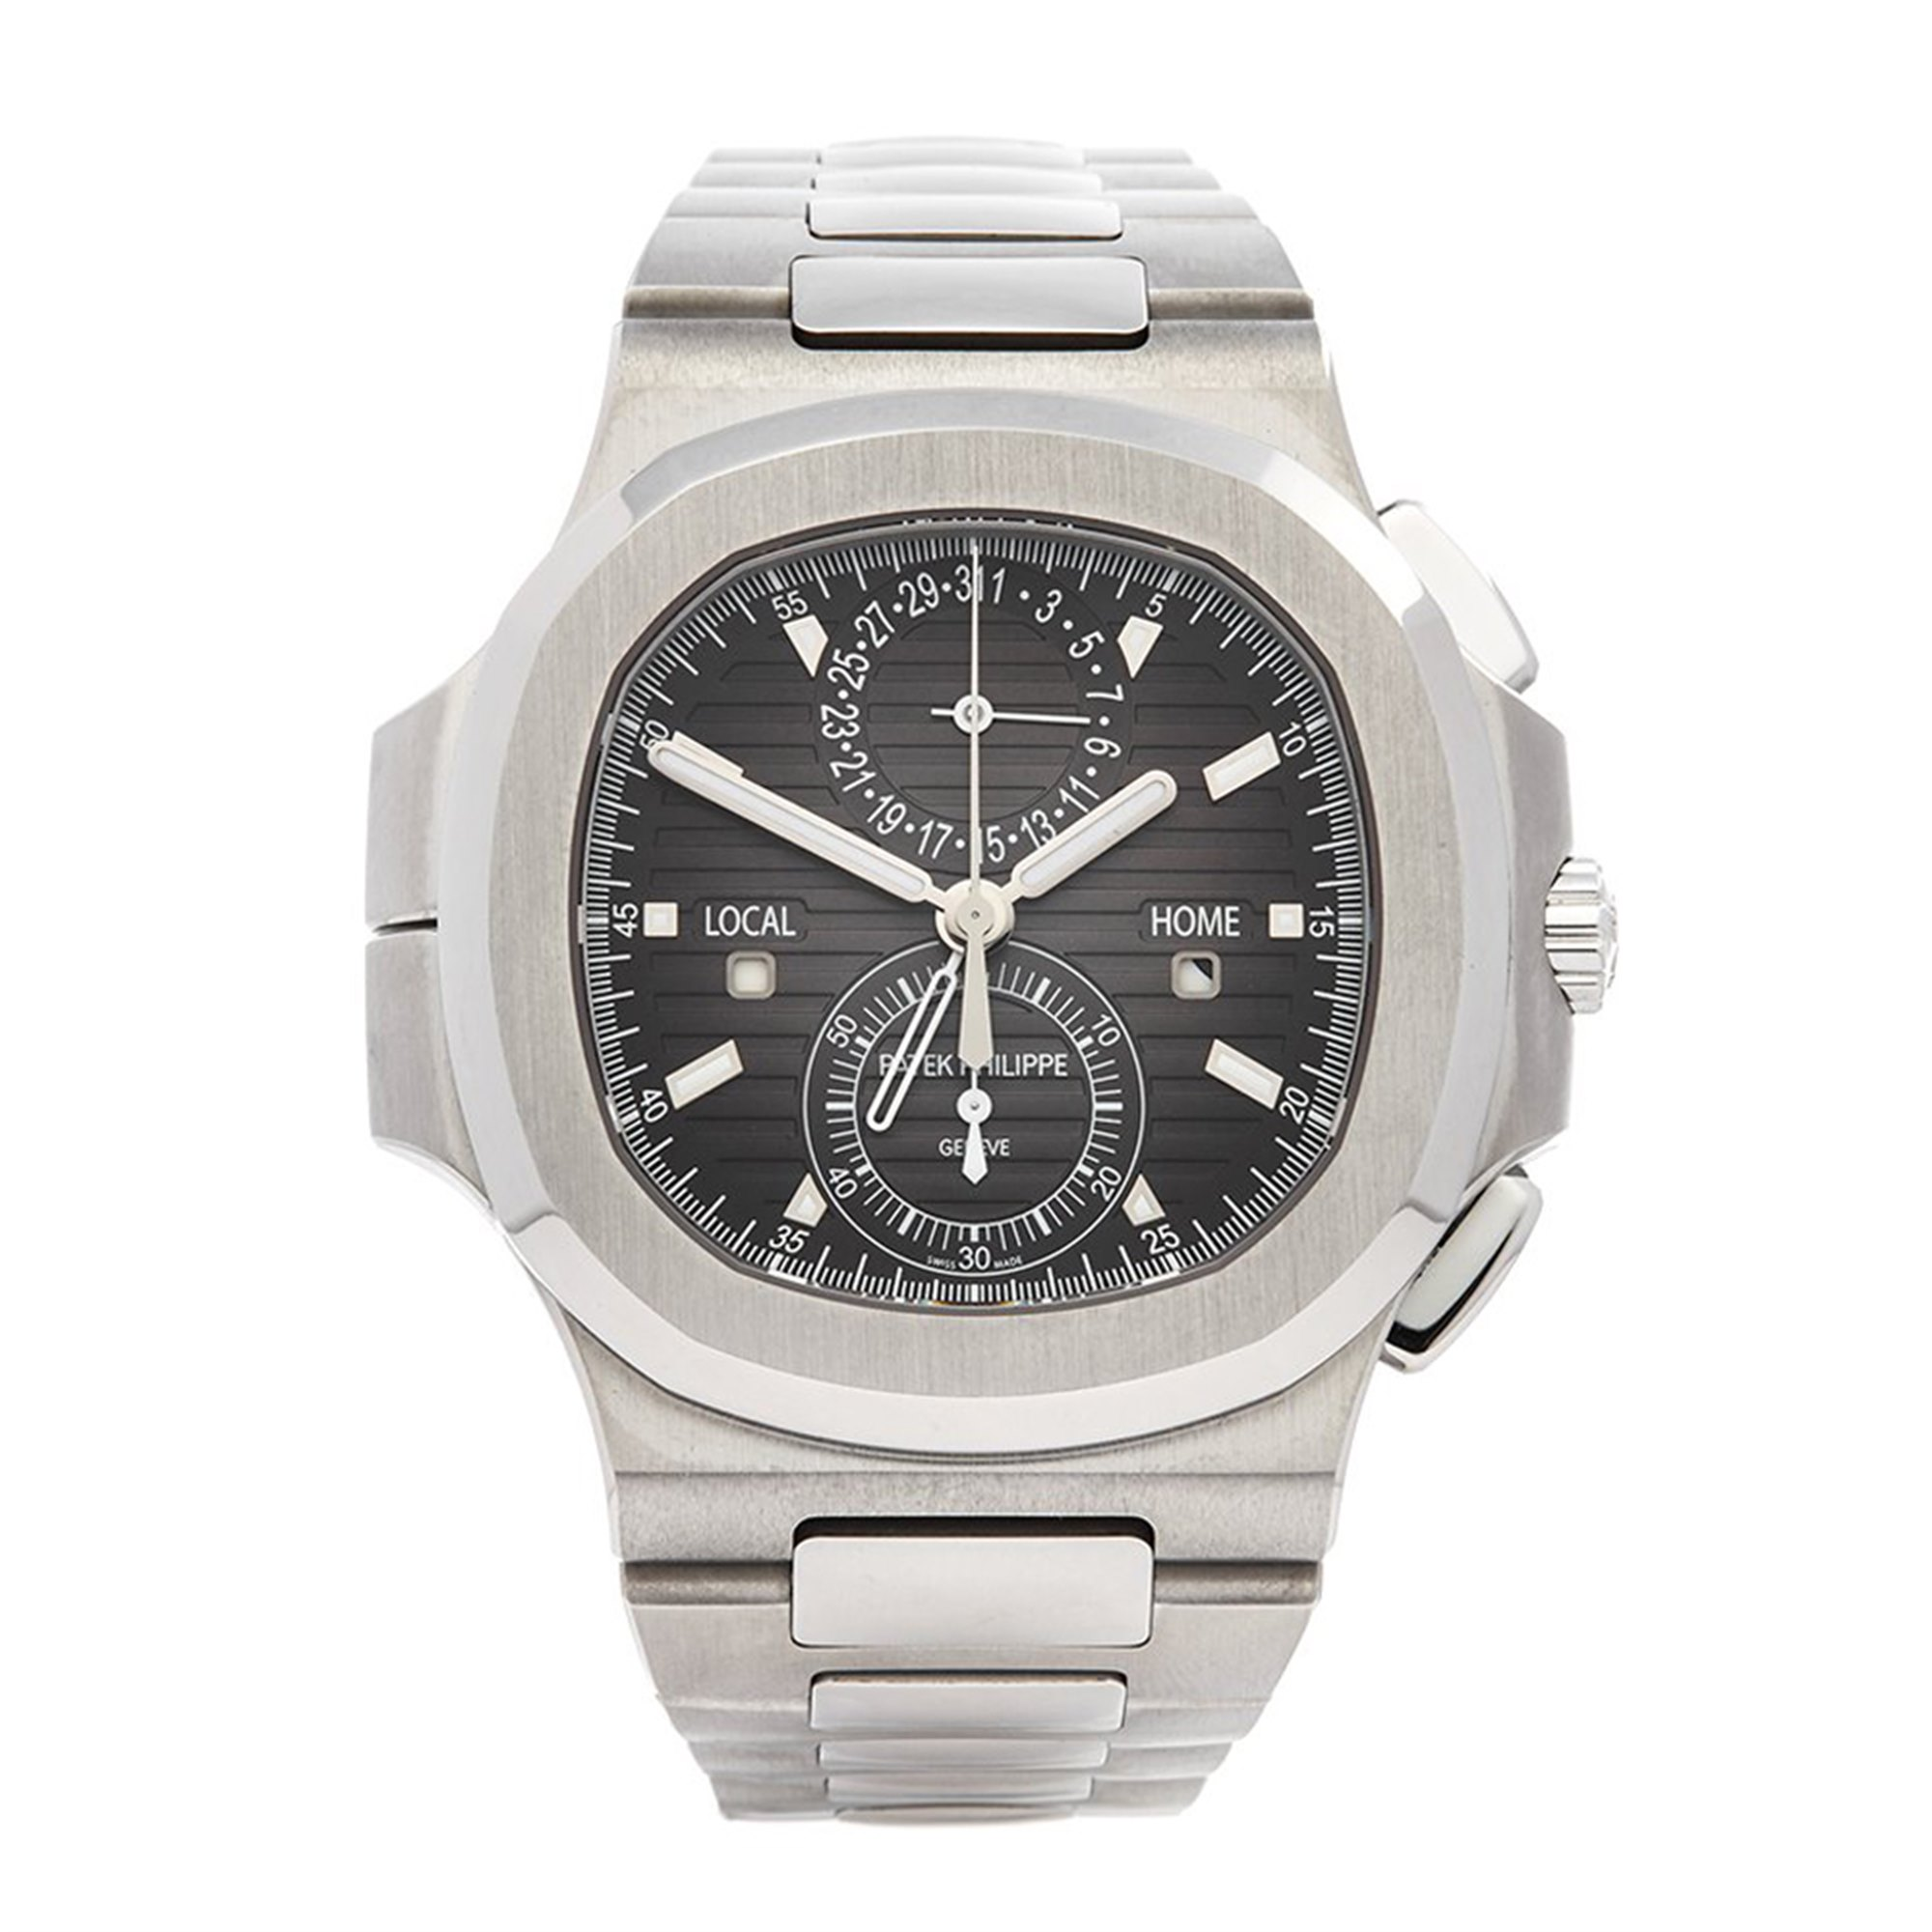 Patek Philippe Nautilus Travel Time Stainless Steel 5990/1A-001